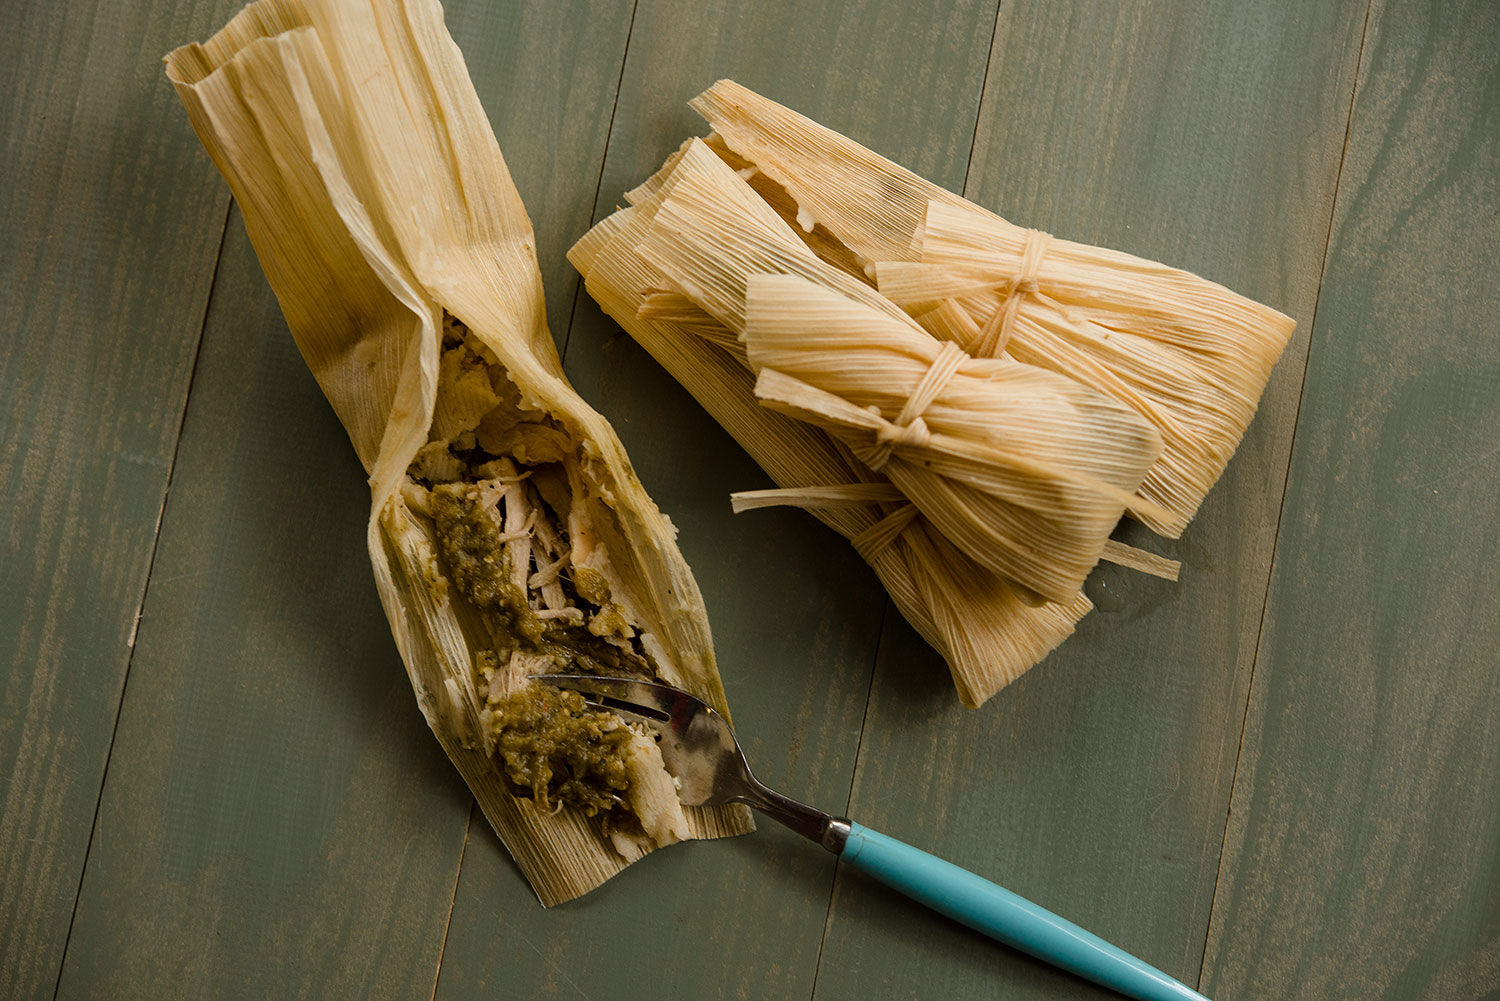 La tamalada! Warm up the house with traditional Mexican tamales